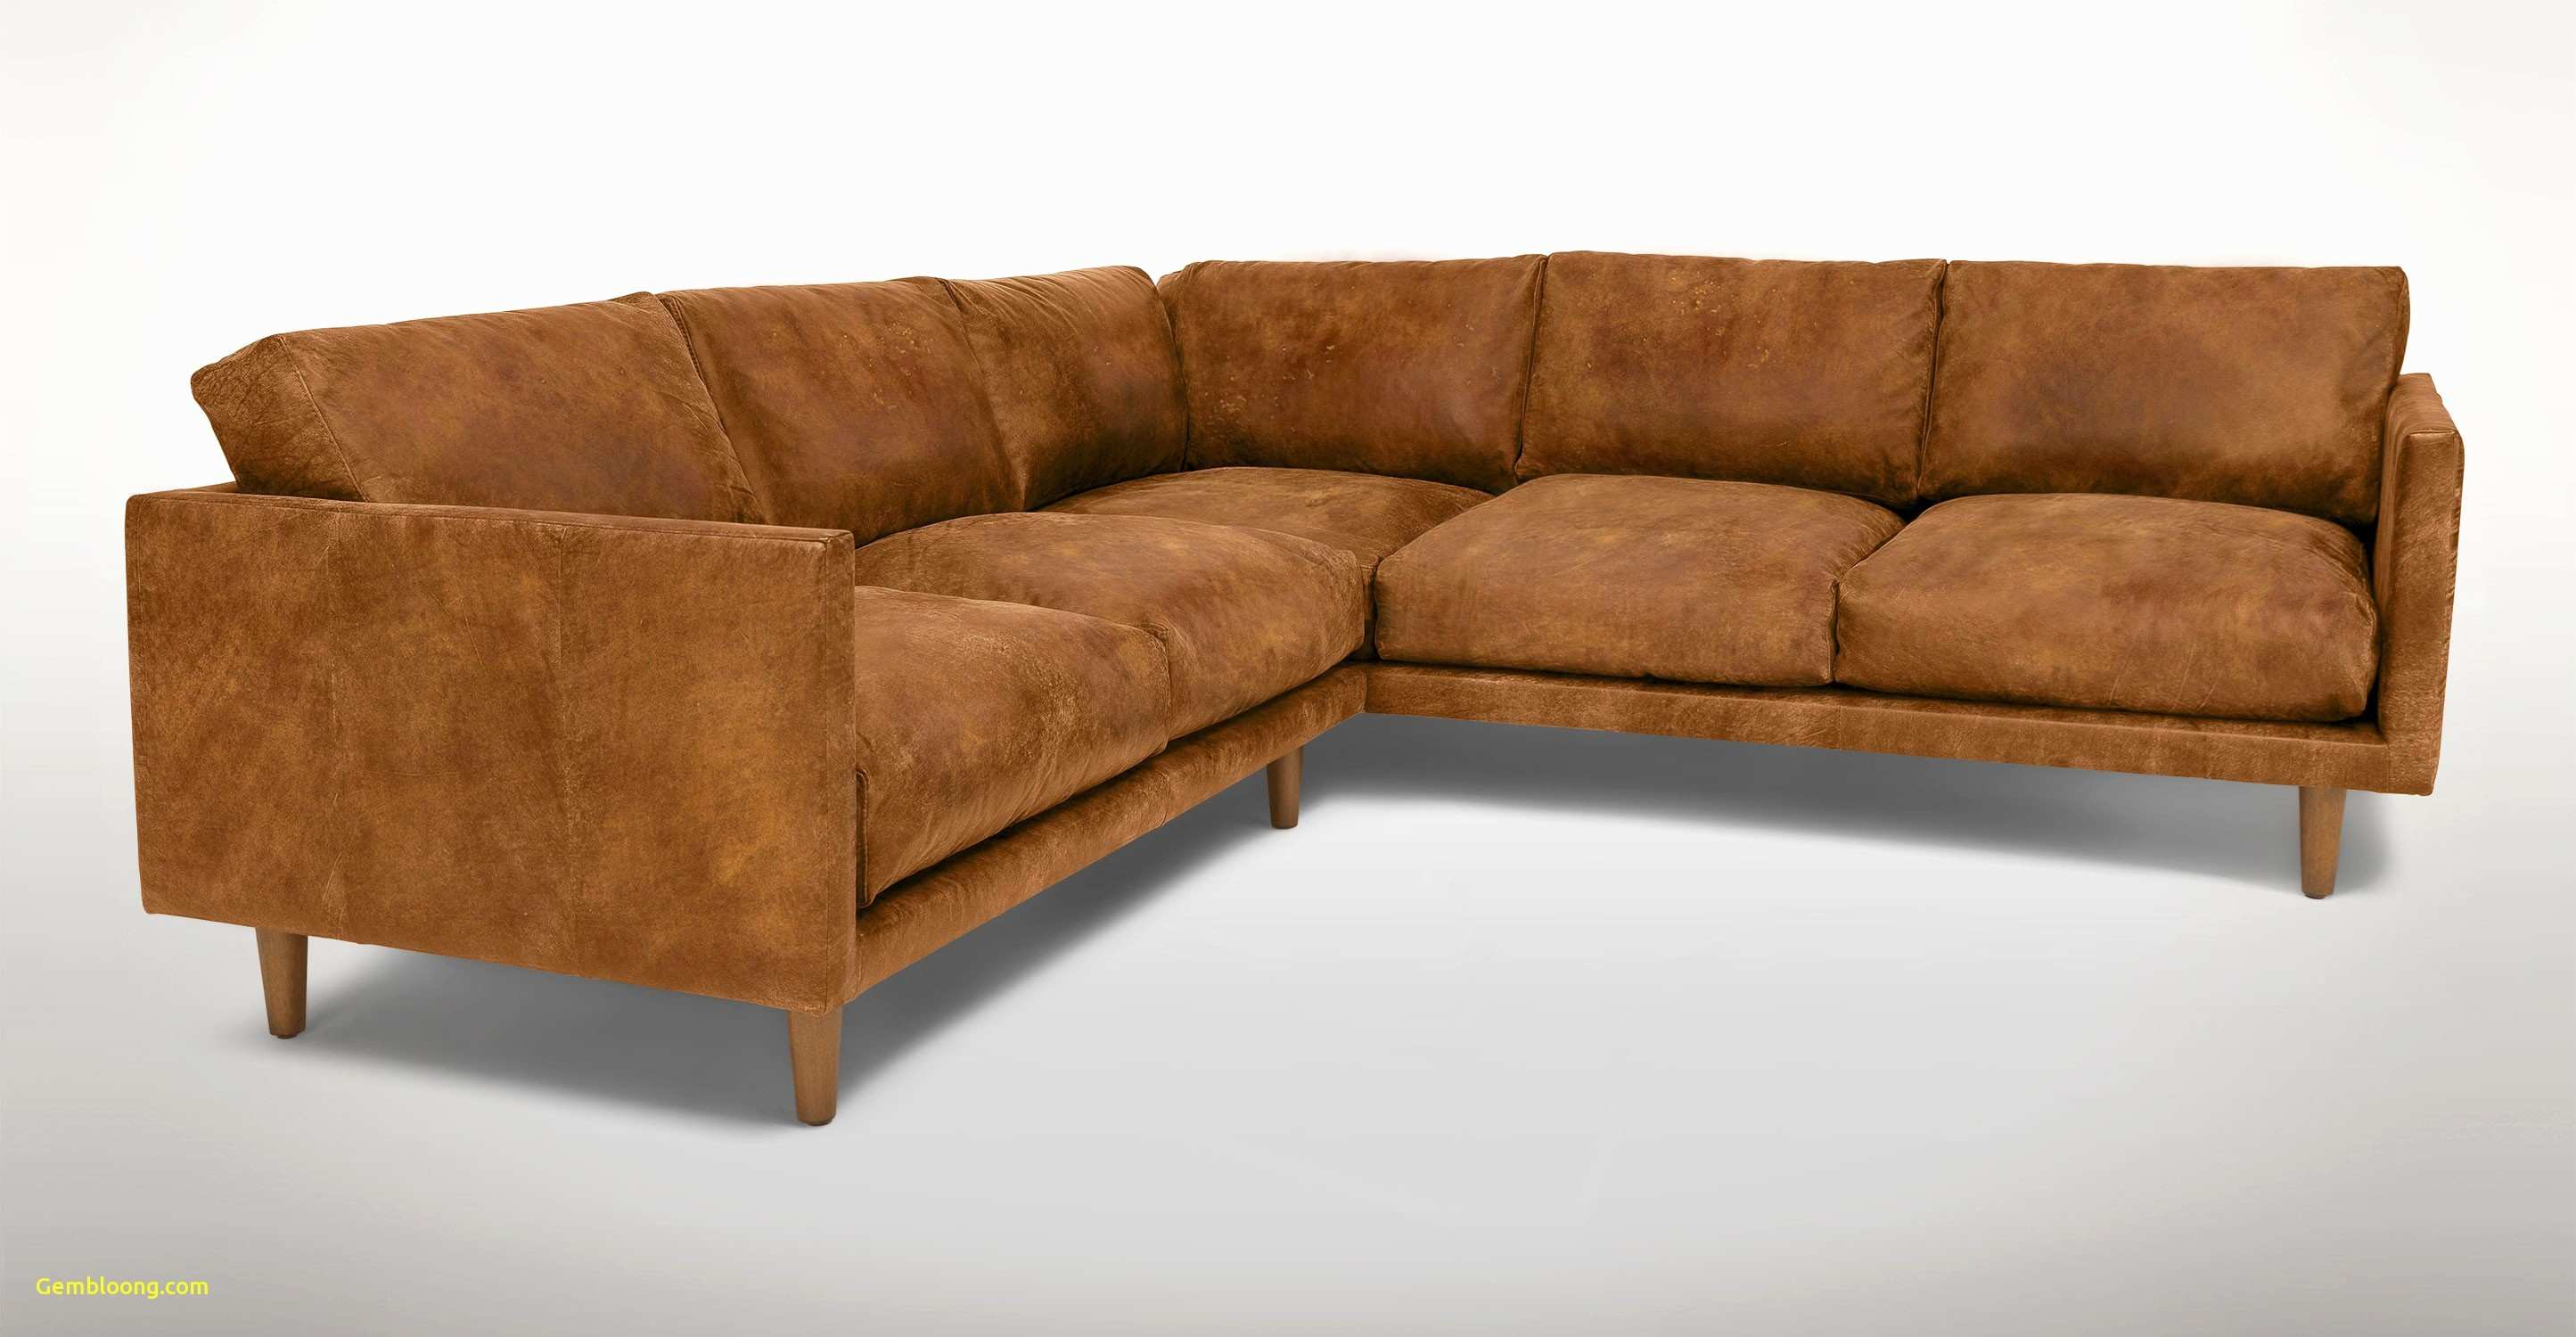 50 New Amazon Leather sofa Graphics 50 s